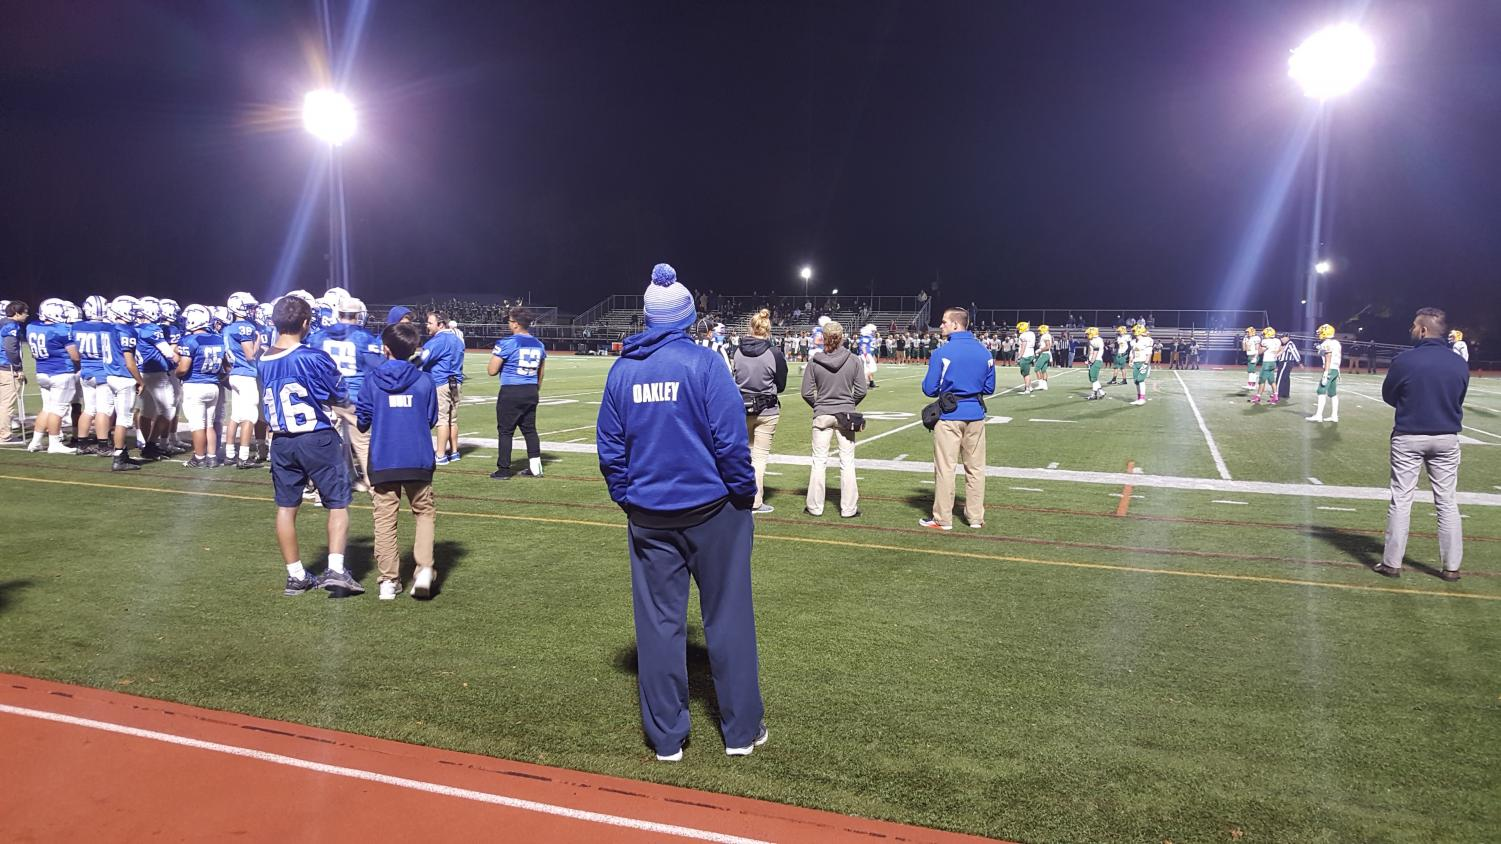 On the sidelines